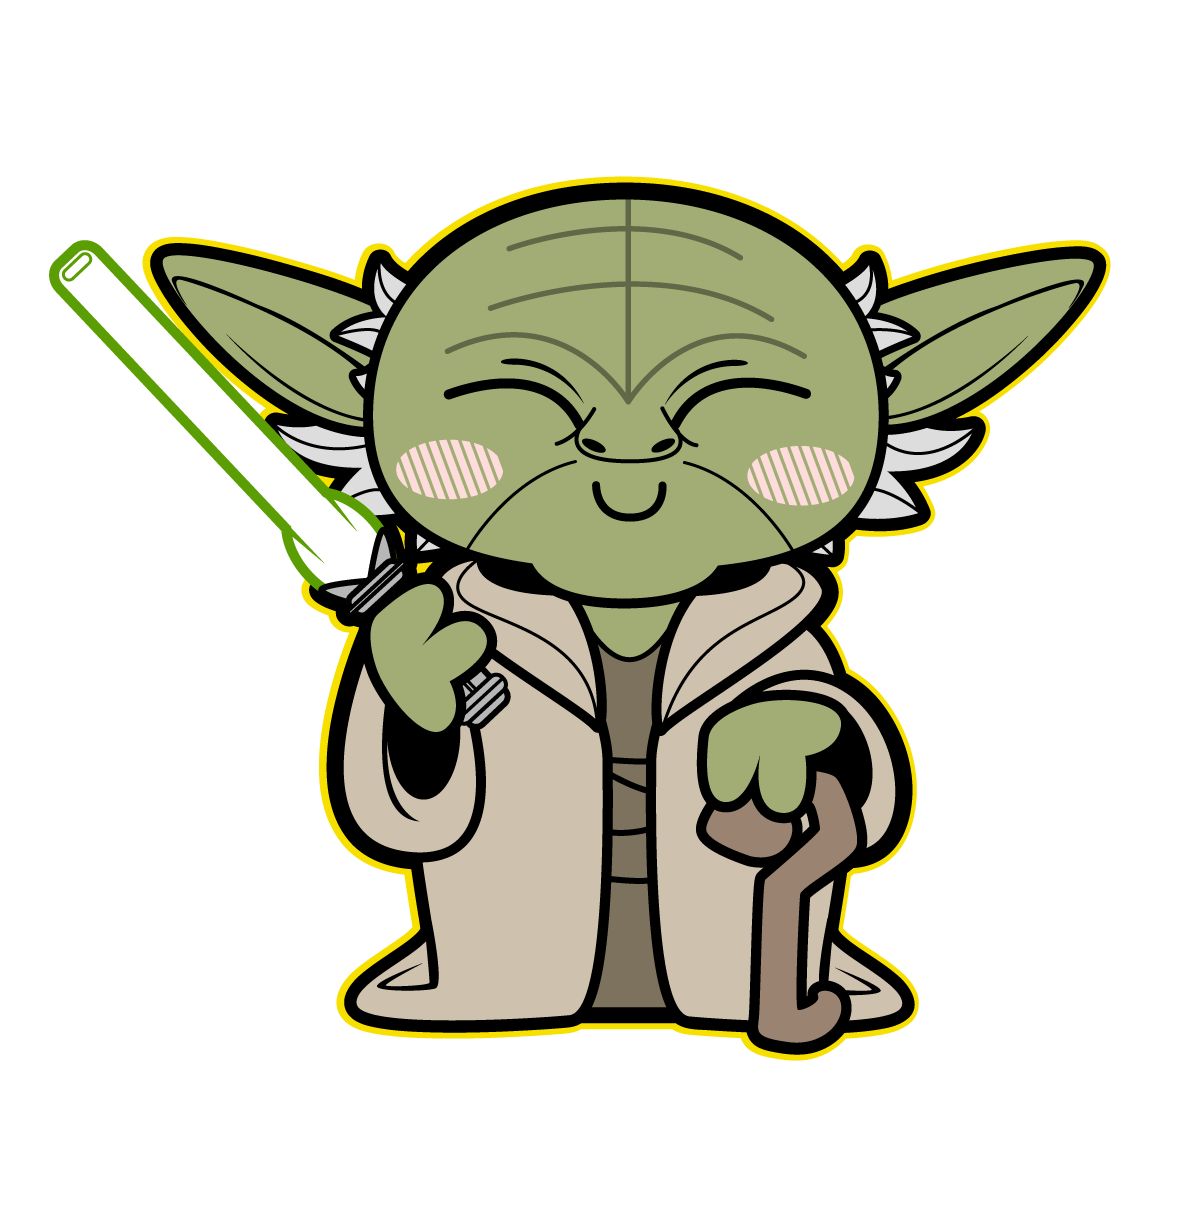 Star wars clipart line drawing picture freeuse library Kawaii Star wars | cool and cute. | Pinterest | Kawaii, Star and Draw picture freeuse library